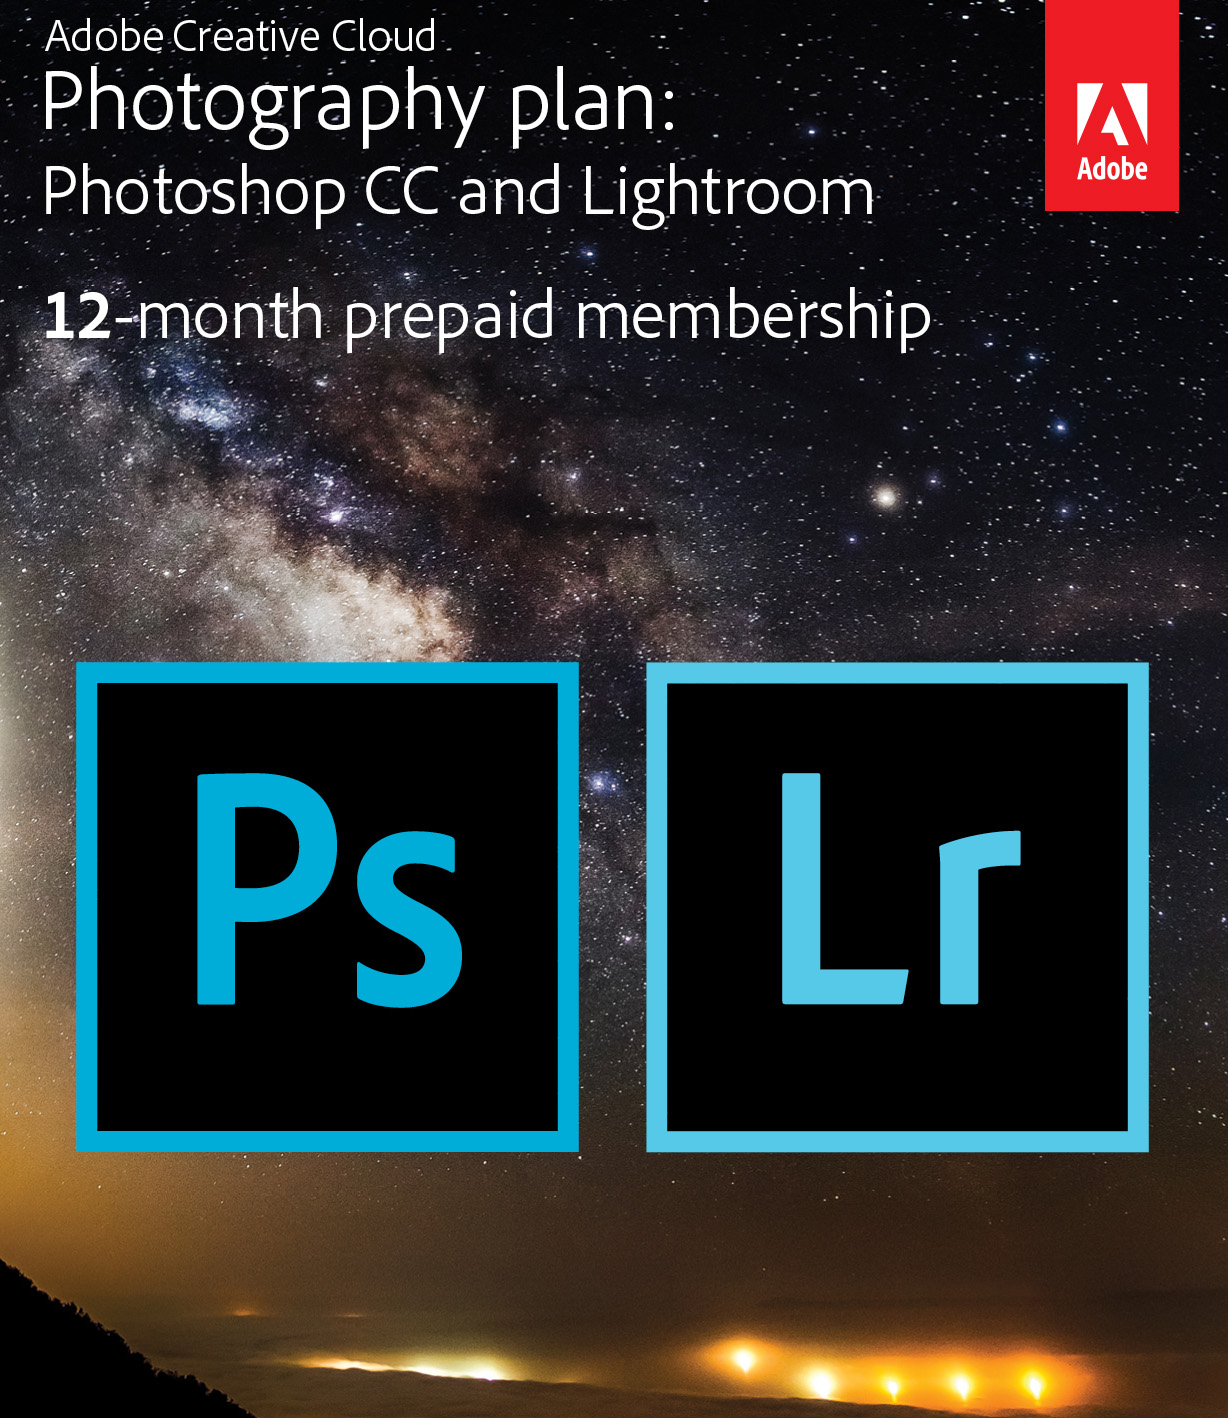 Adobe Creative Cloud Subscription - Lightroom & Photoshop for one year - just $119 ad